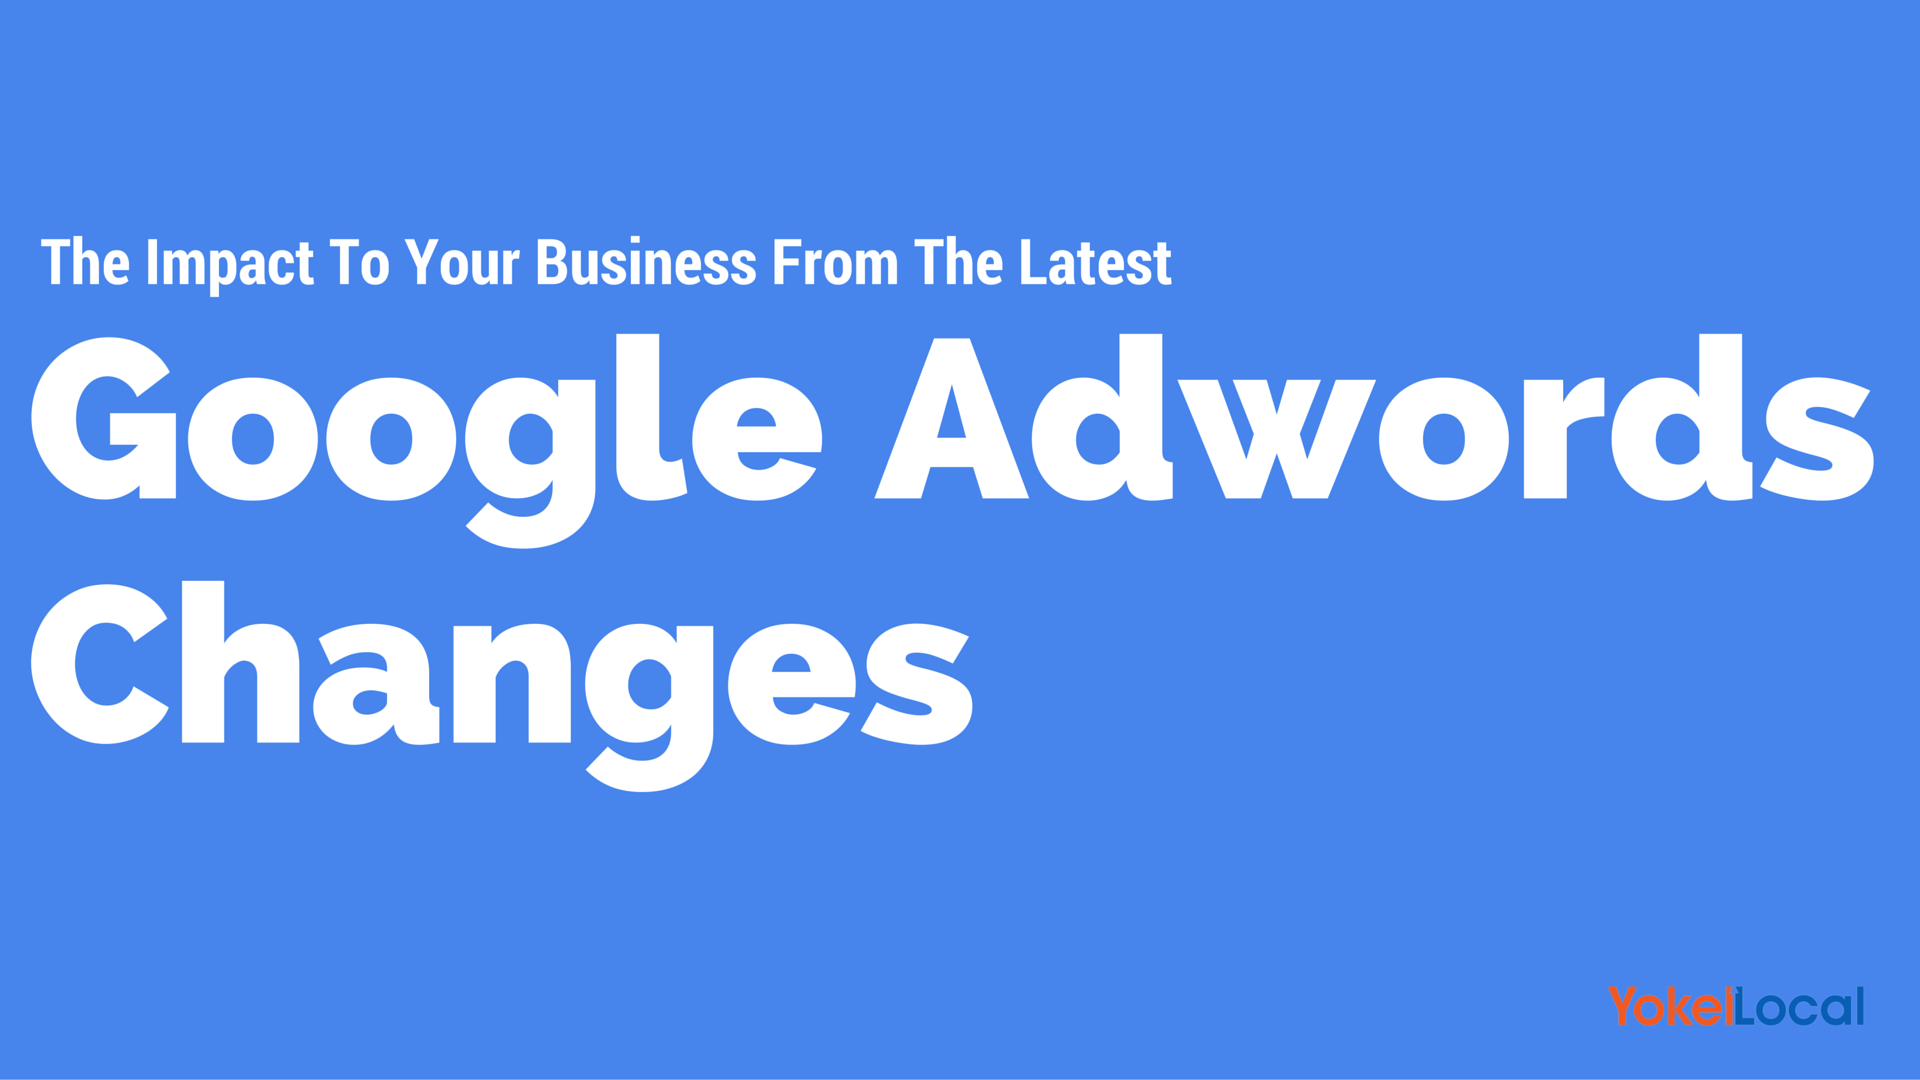 Google Stops Showing Ads On Right Side Of Search Results - (Here's the Impact On Your Local Business)